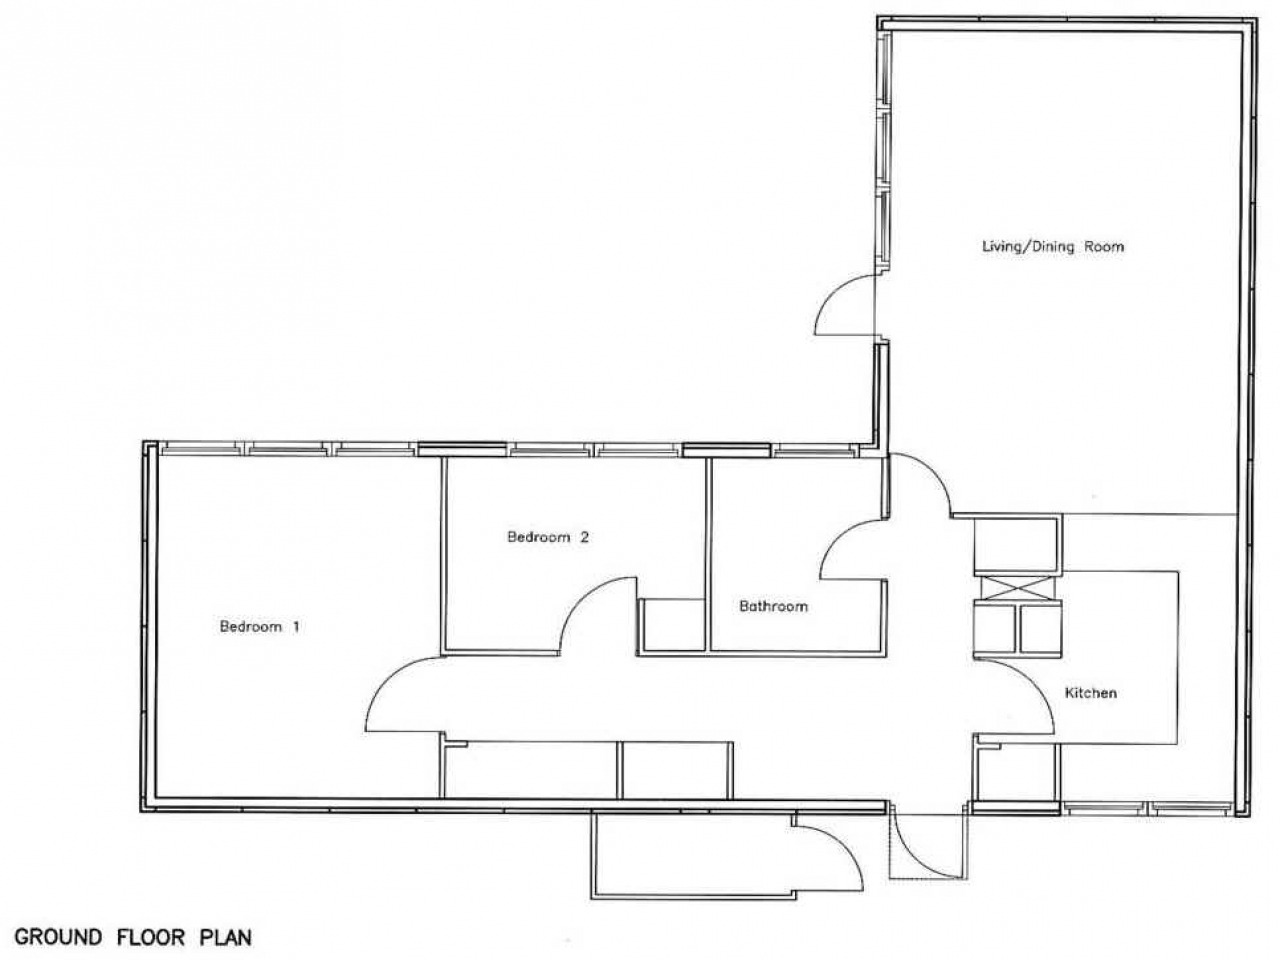 Craftsman bungalow house plans bedroom bungalow floor plan for 5 bedroom bungalow house plans